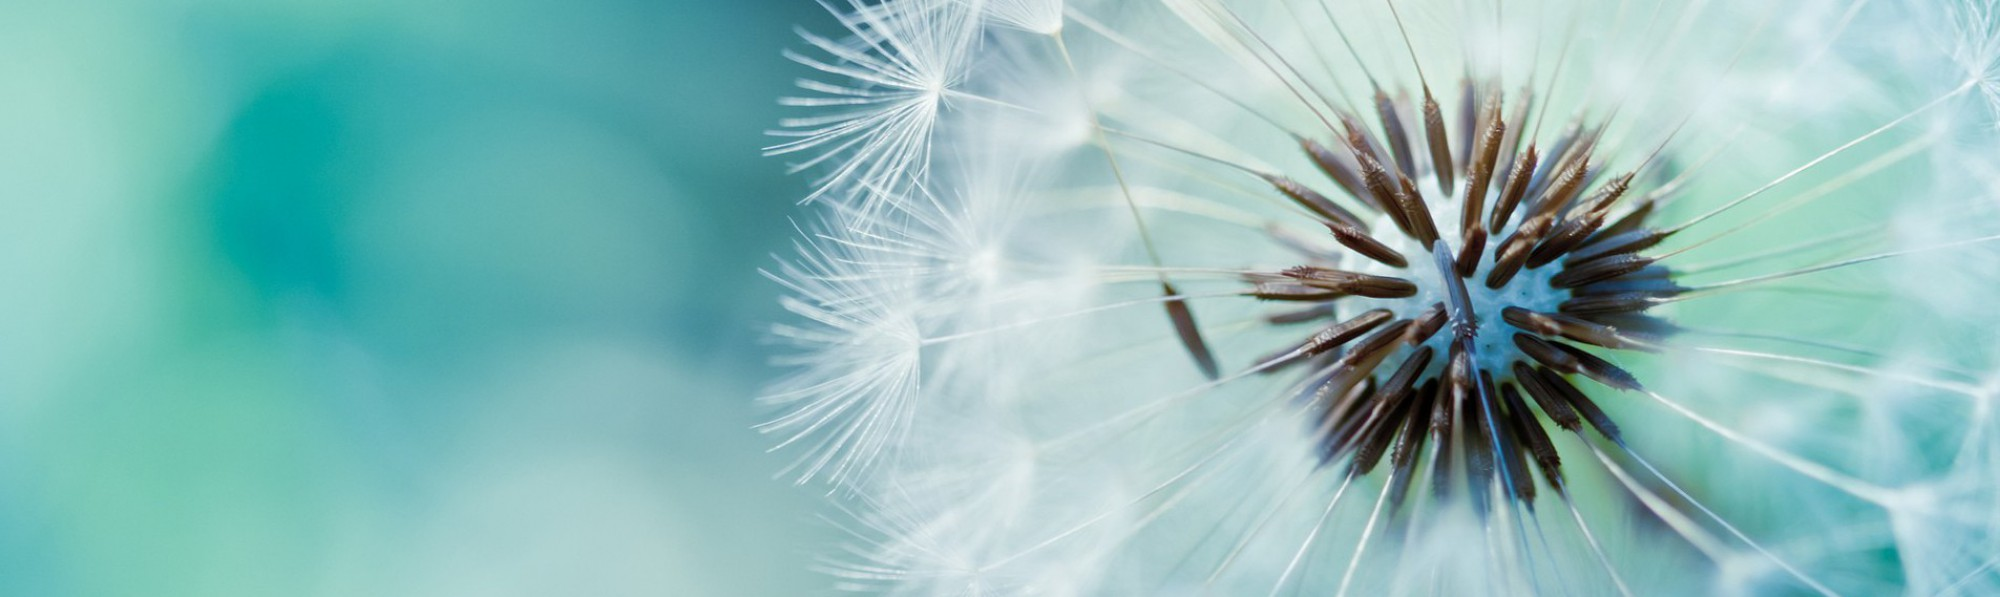 dandelion communications